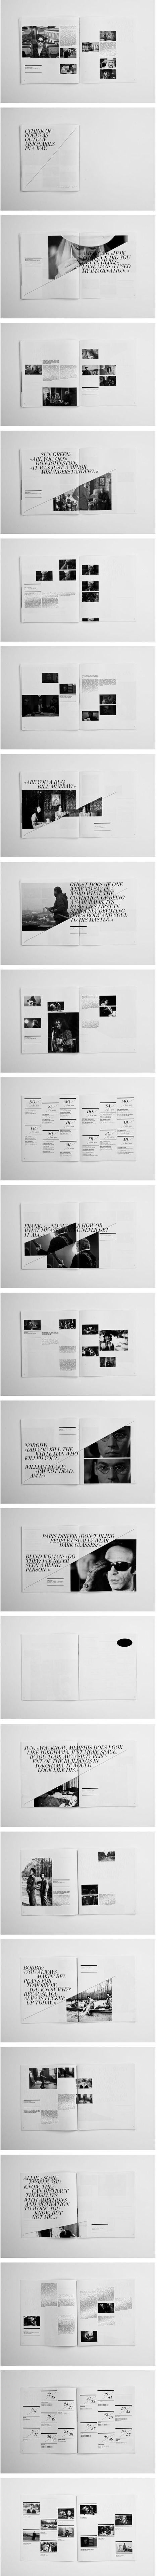 Book Spread Grid Layout Design Graphic Typography Photography Diagonal